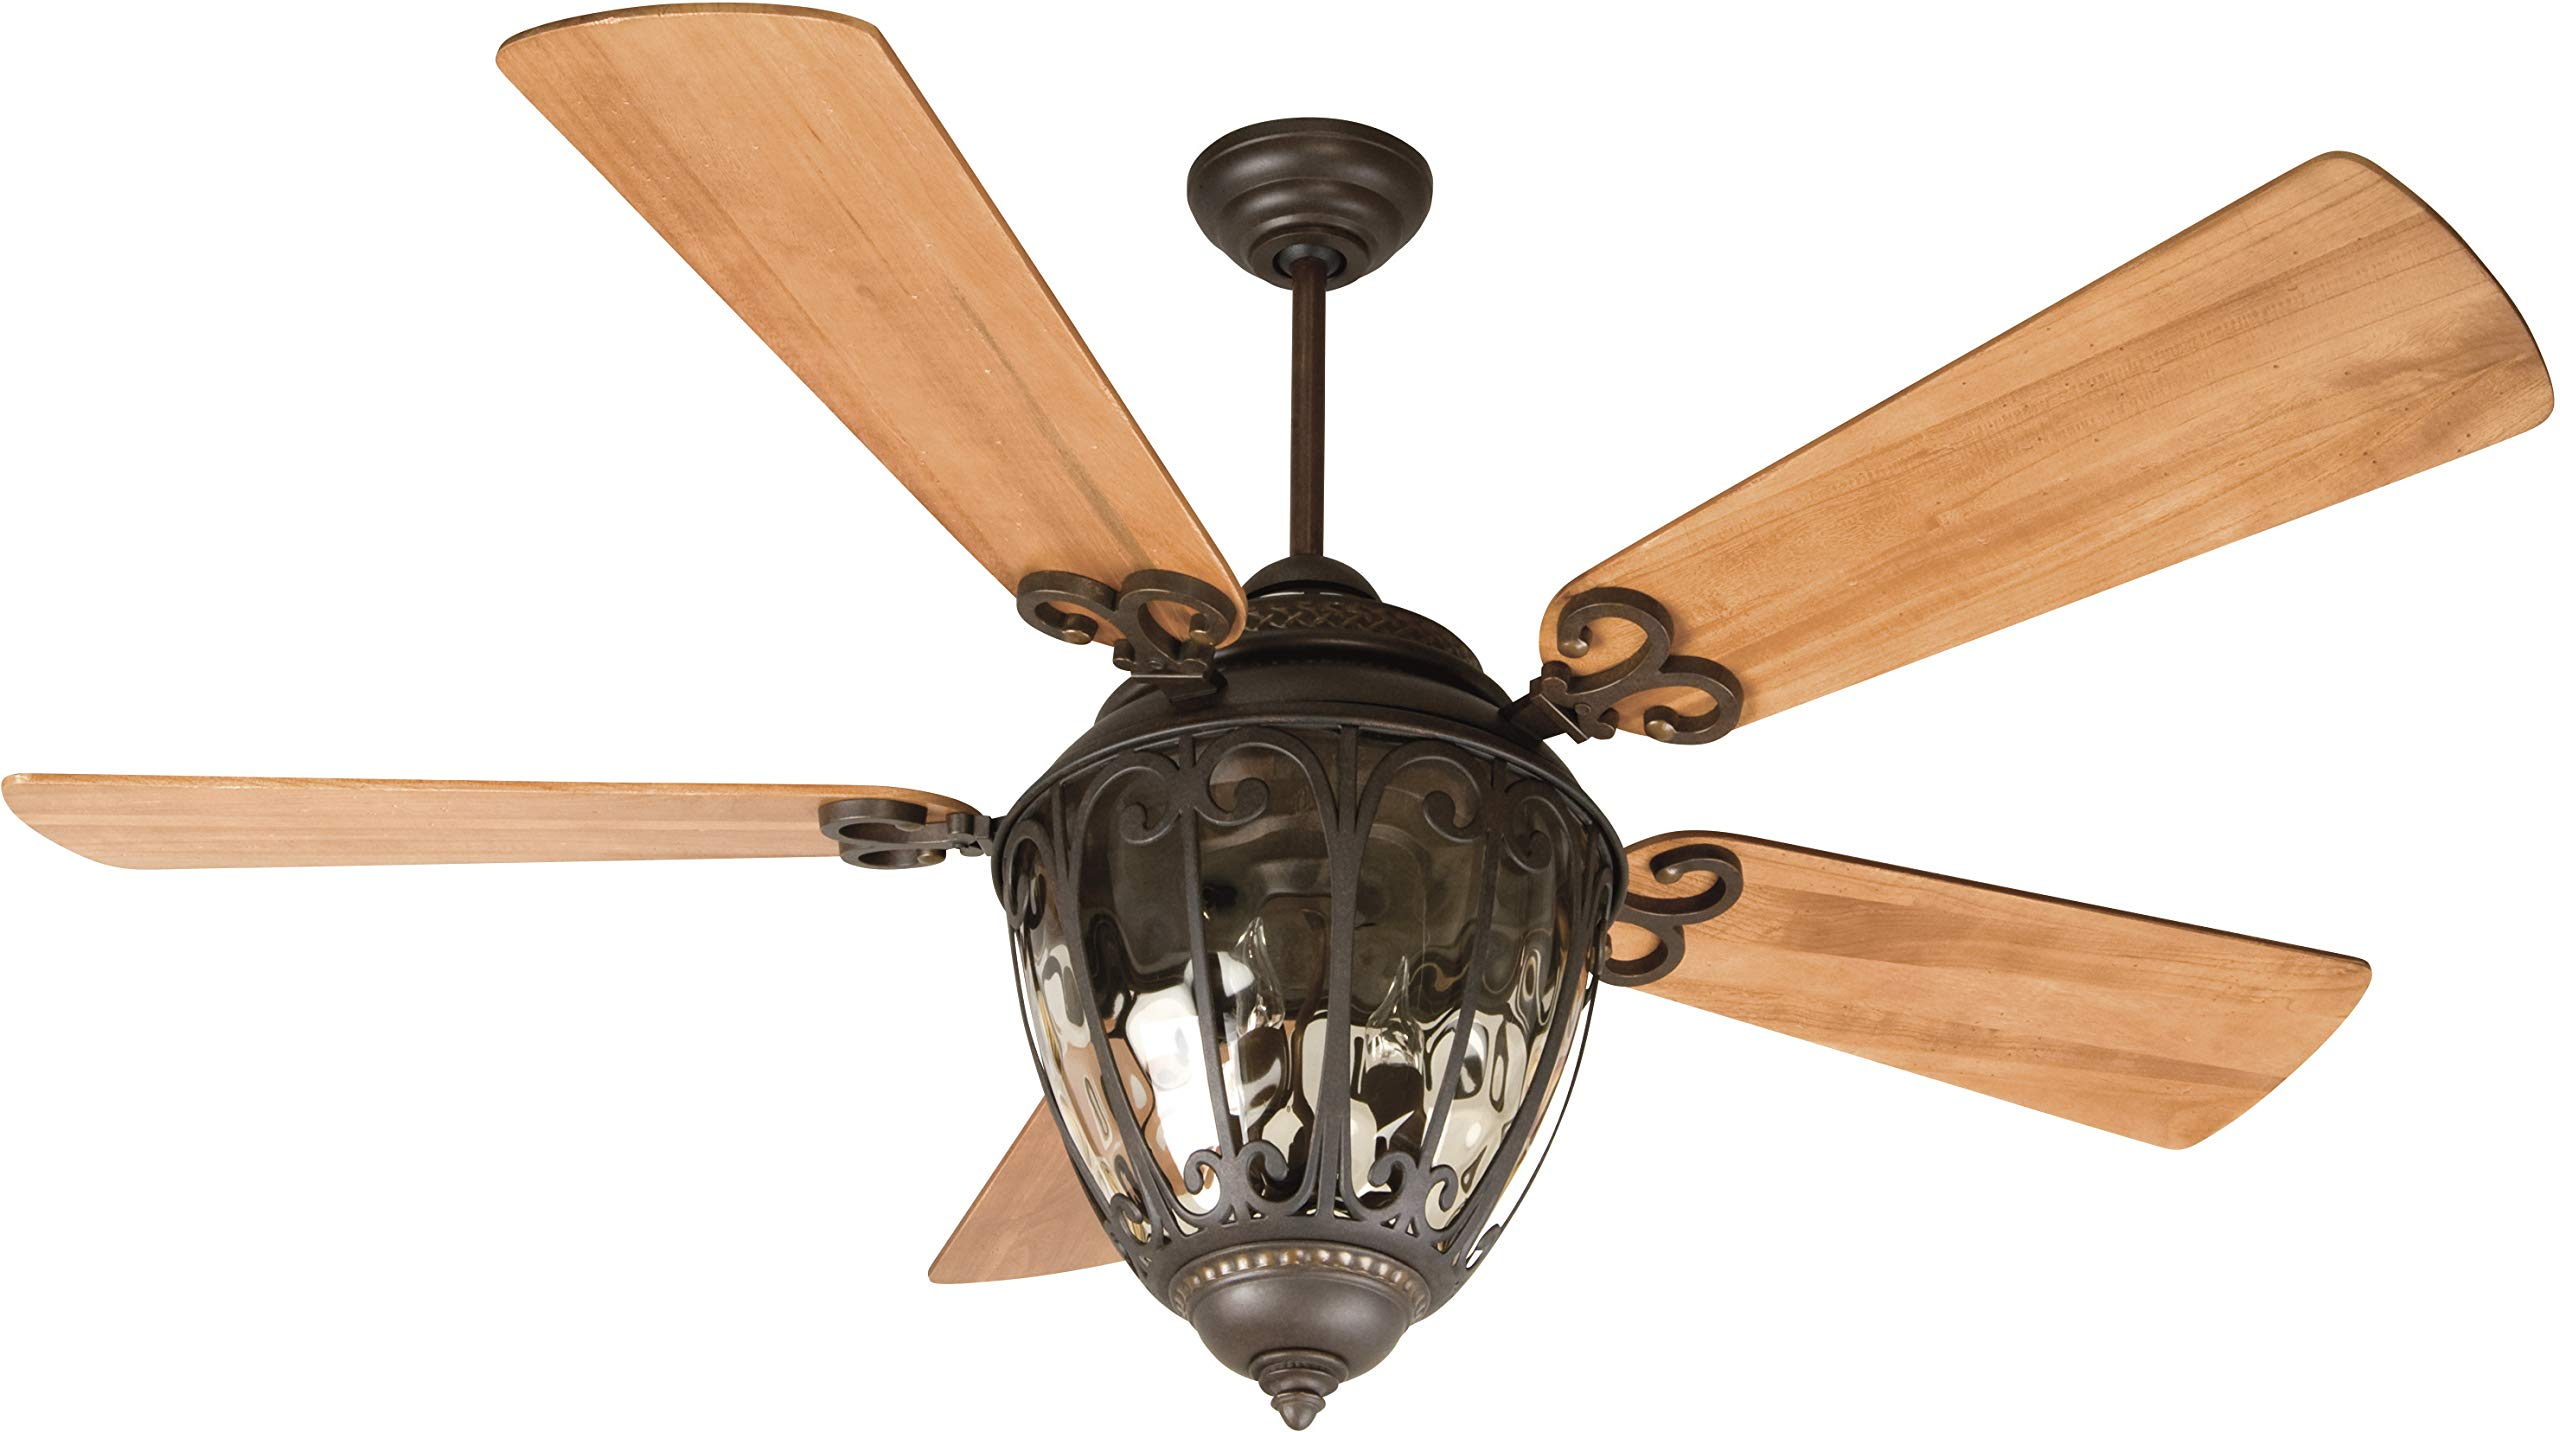 Craftmade K10731 Ceiling Fan Motor with Blades Included